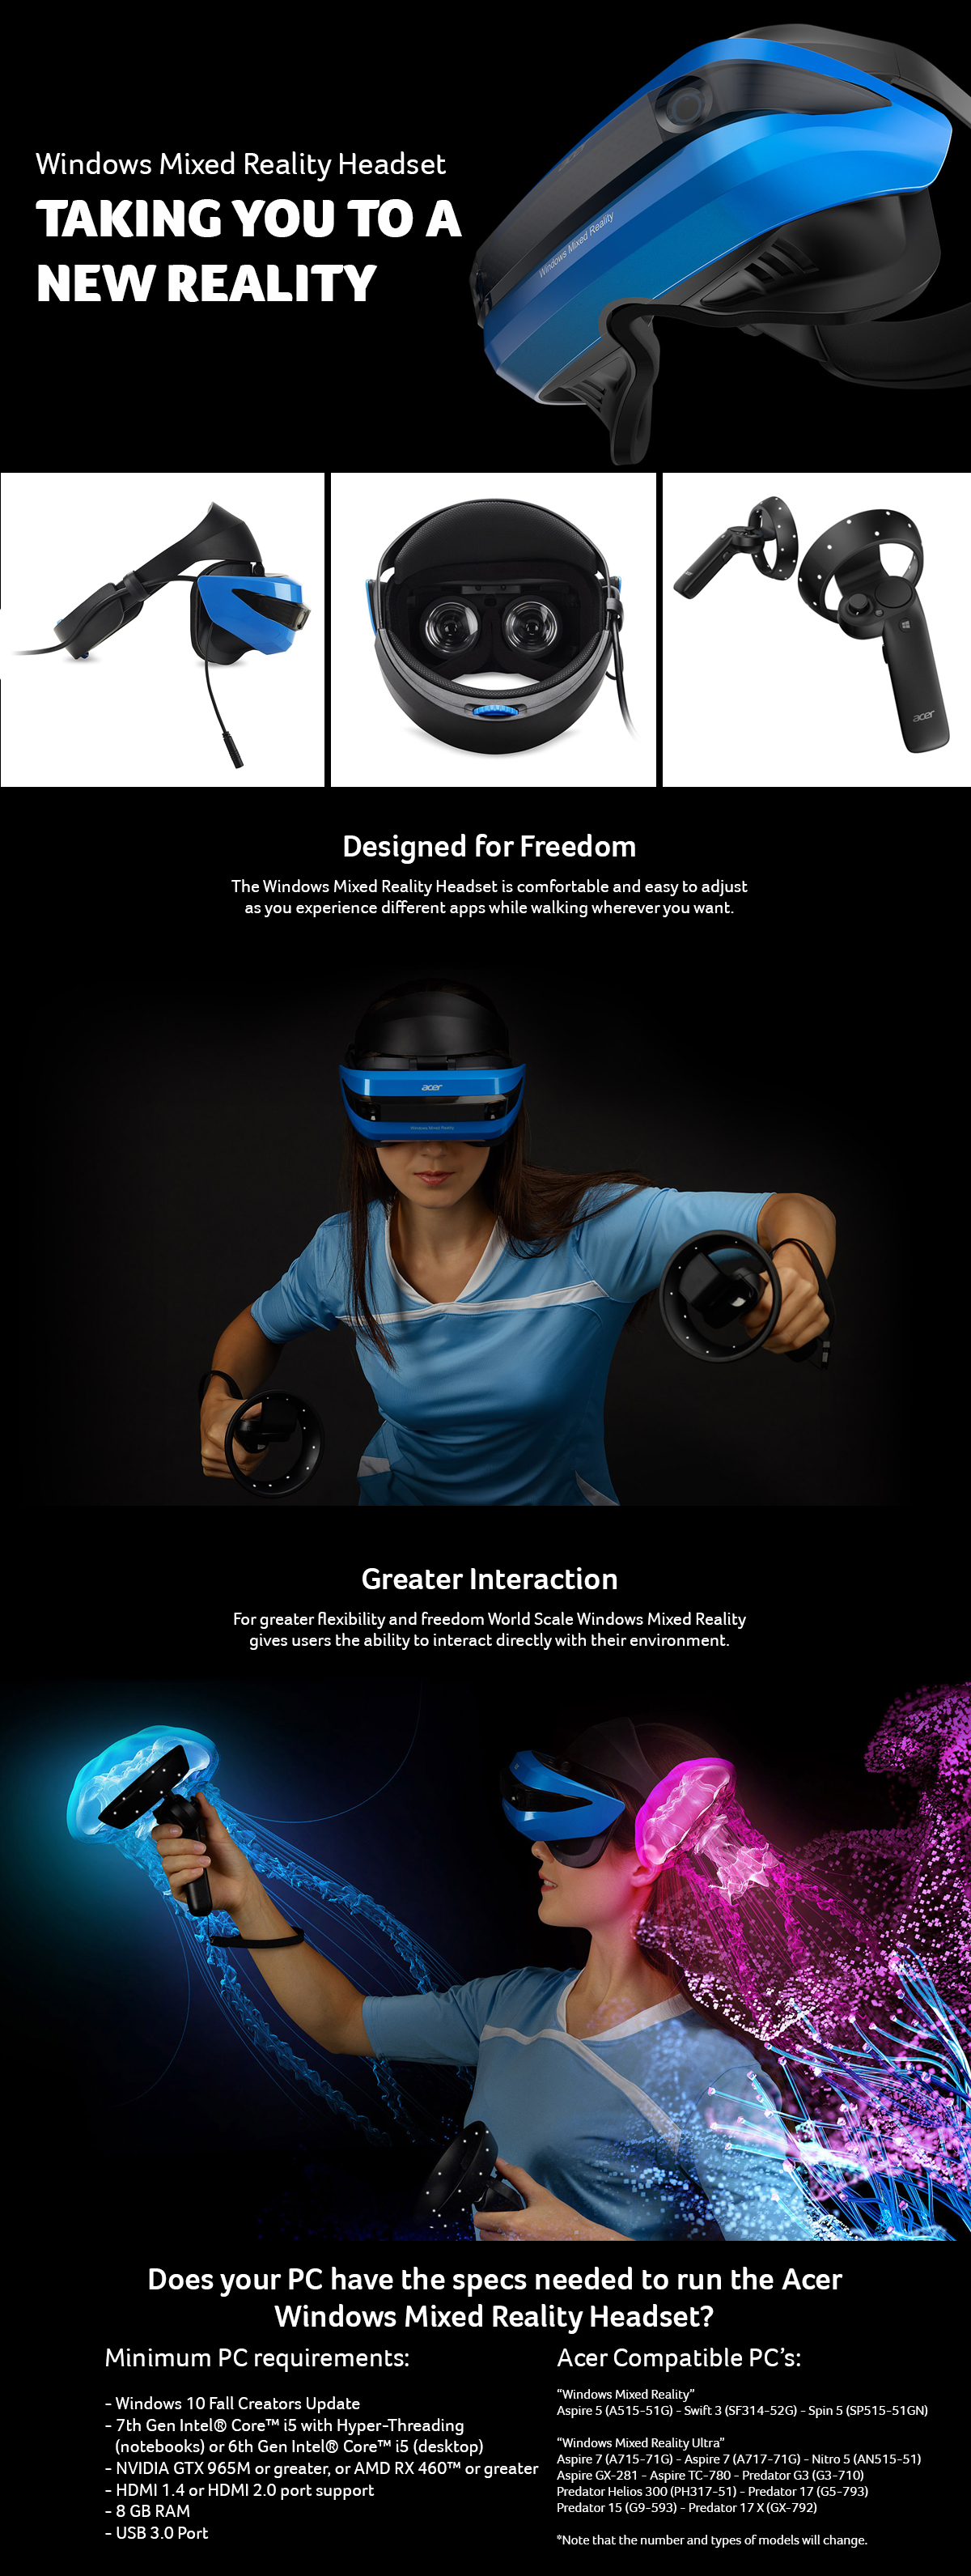 Details about Acer Windows Mixed Reality Headset & Controllers